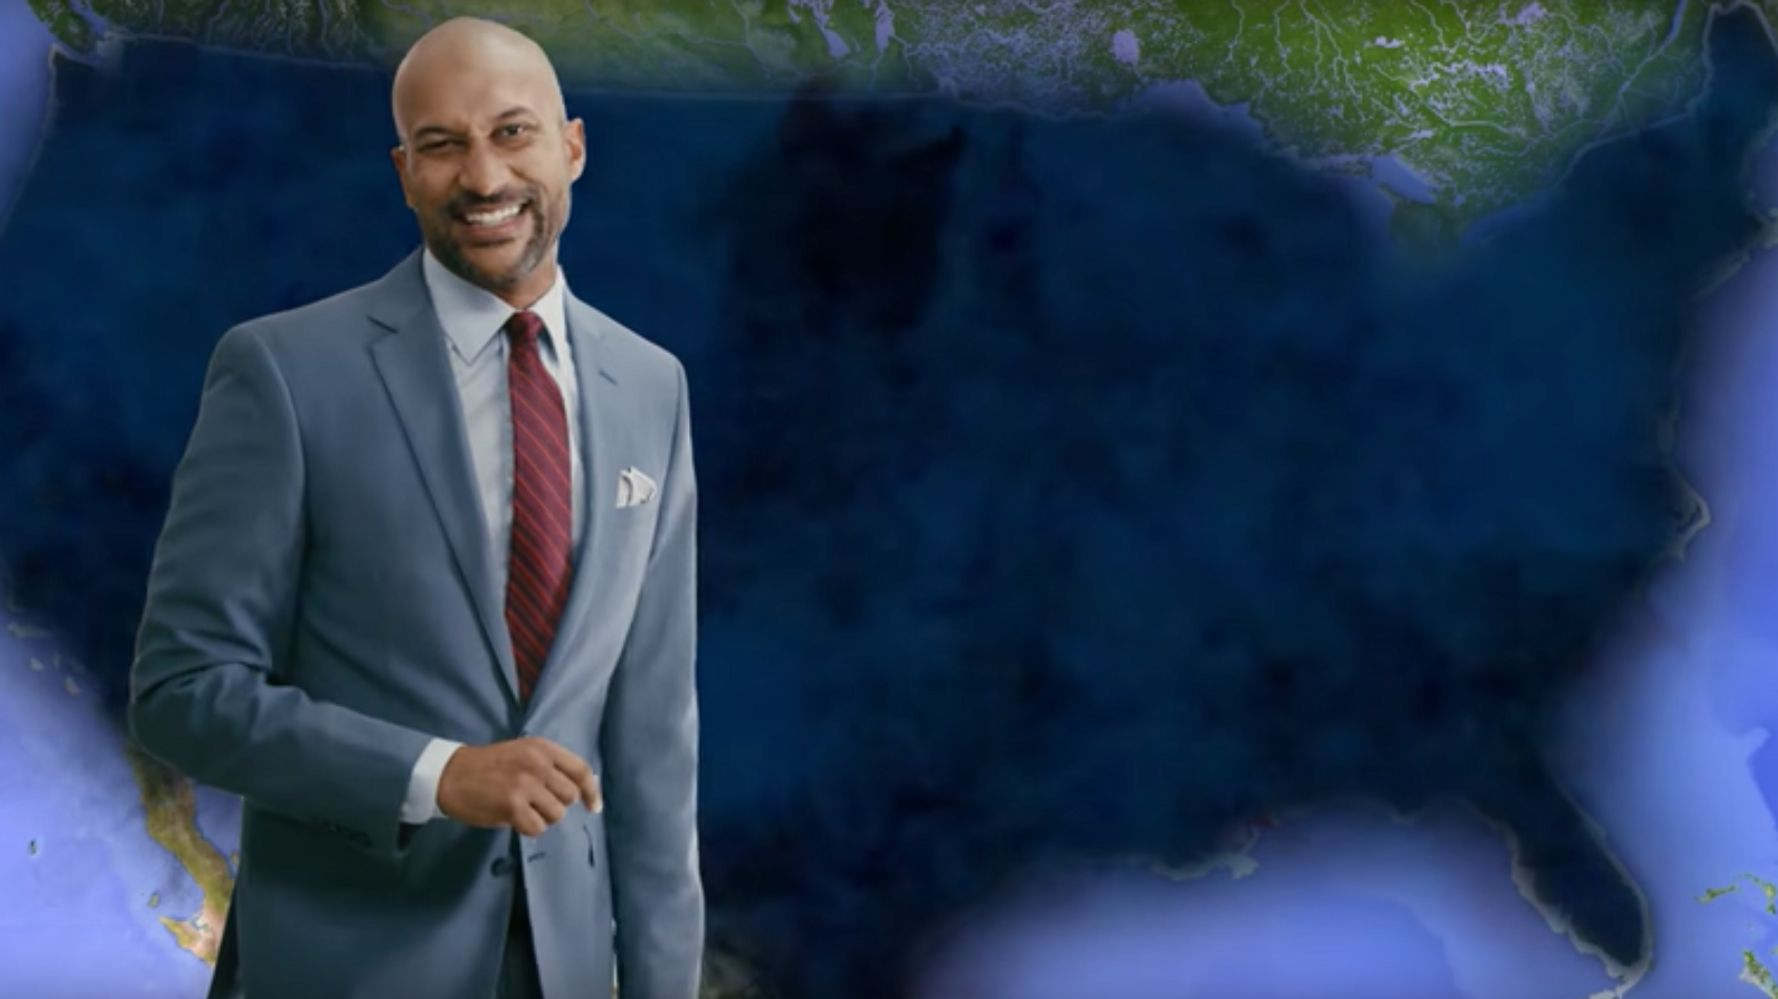 Keegan-Michael Key Provides A Bleak Forecast For Trump's America In New Video